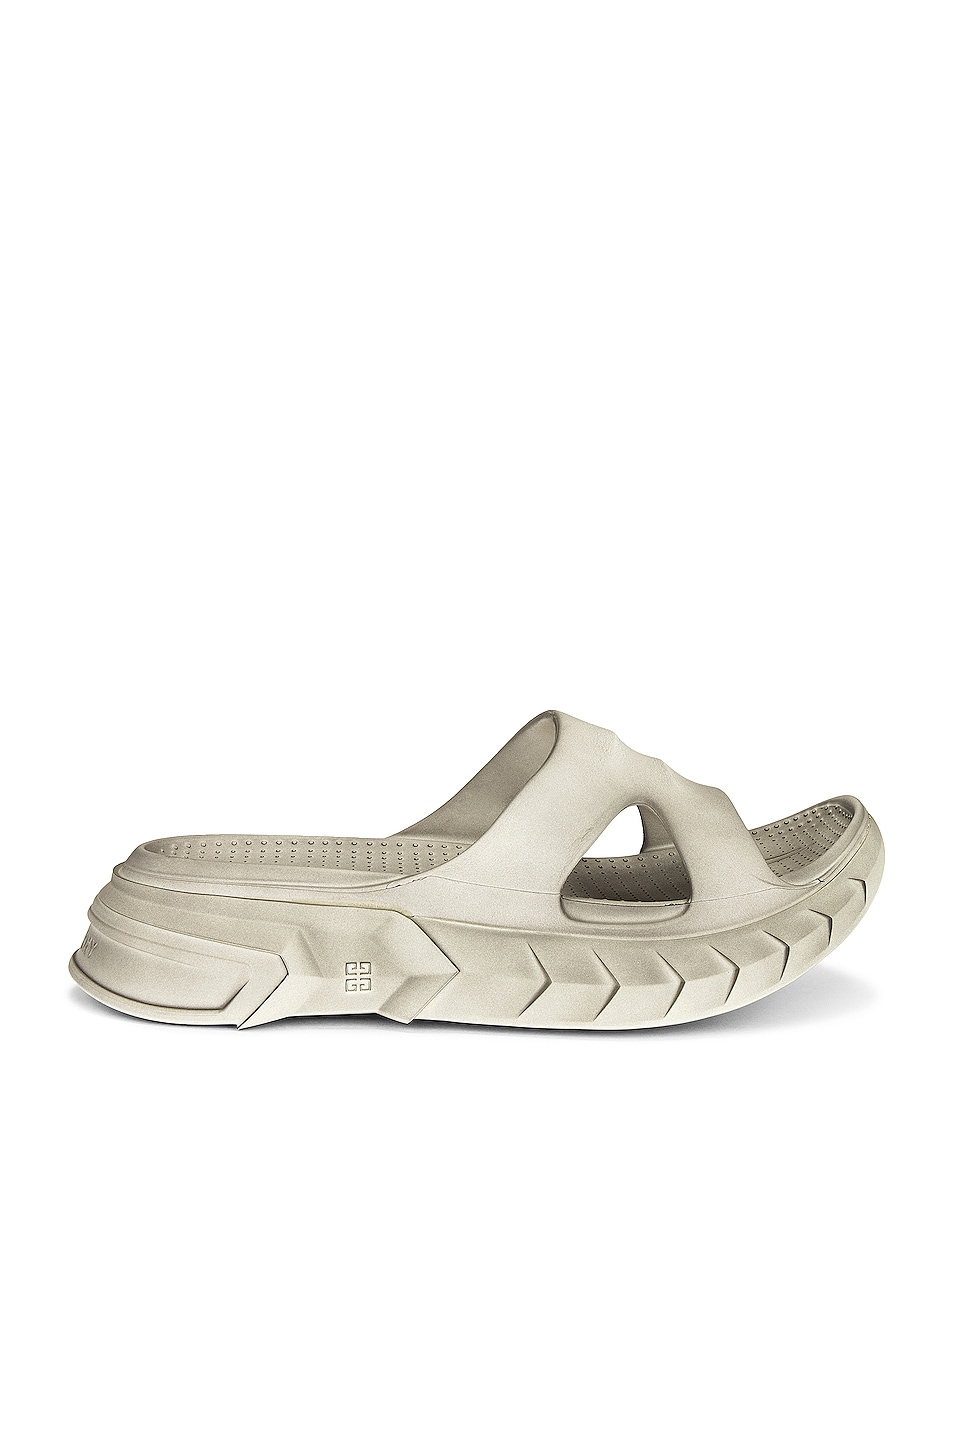 Image 1 of Givenchy Marshmallow Slide Sandal in Cream